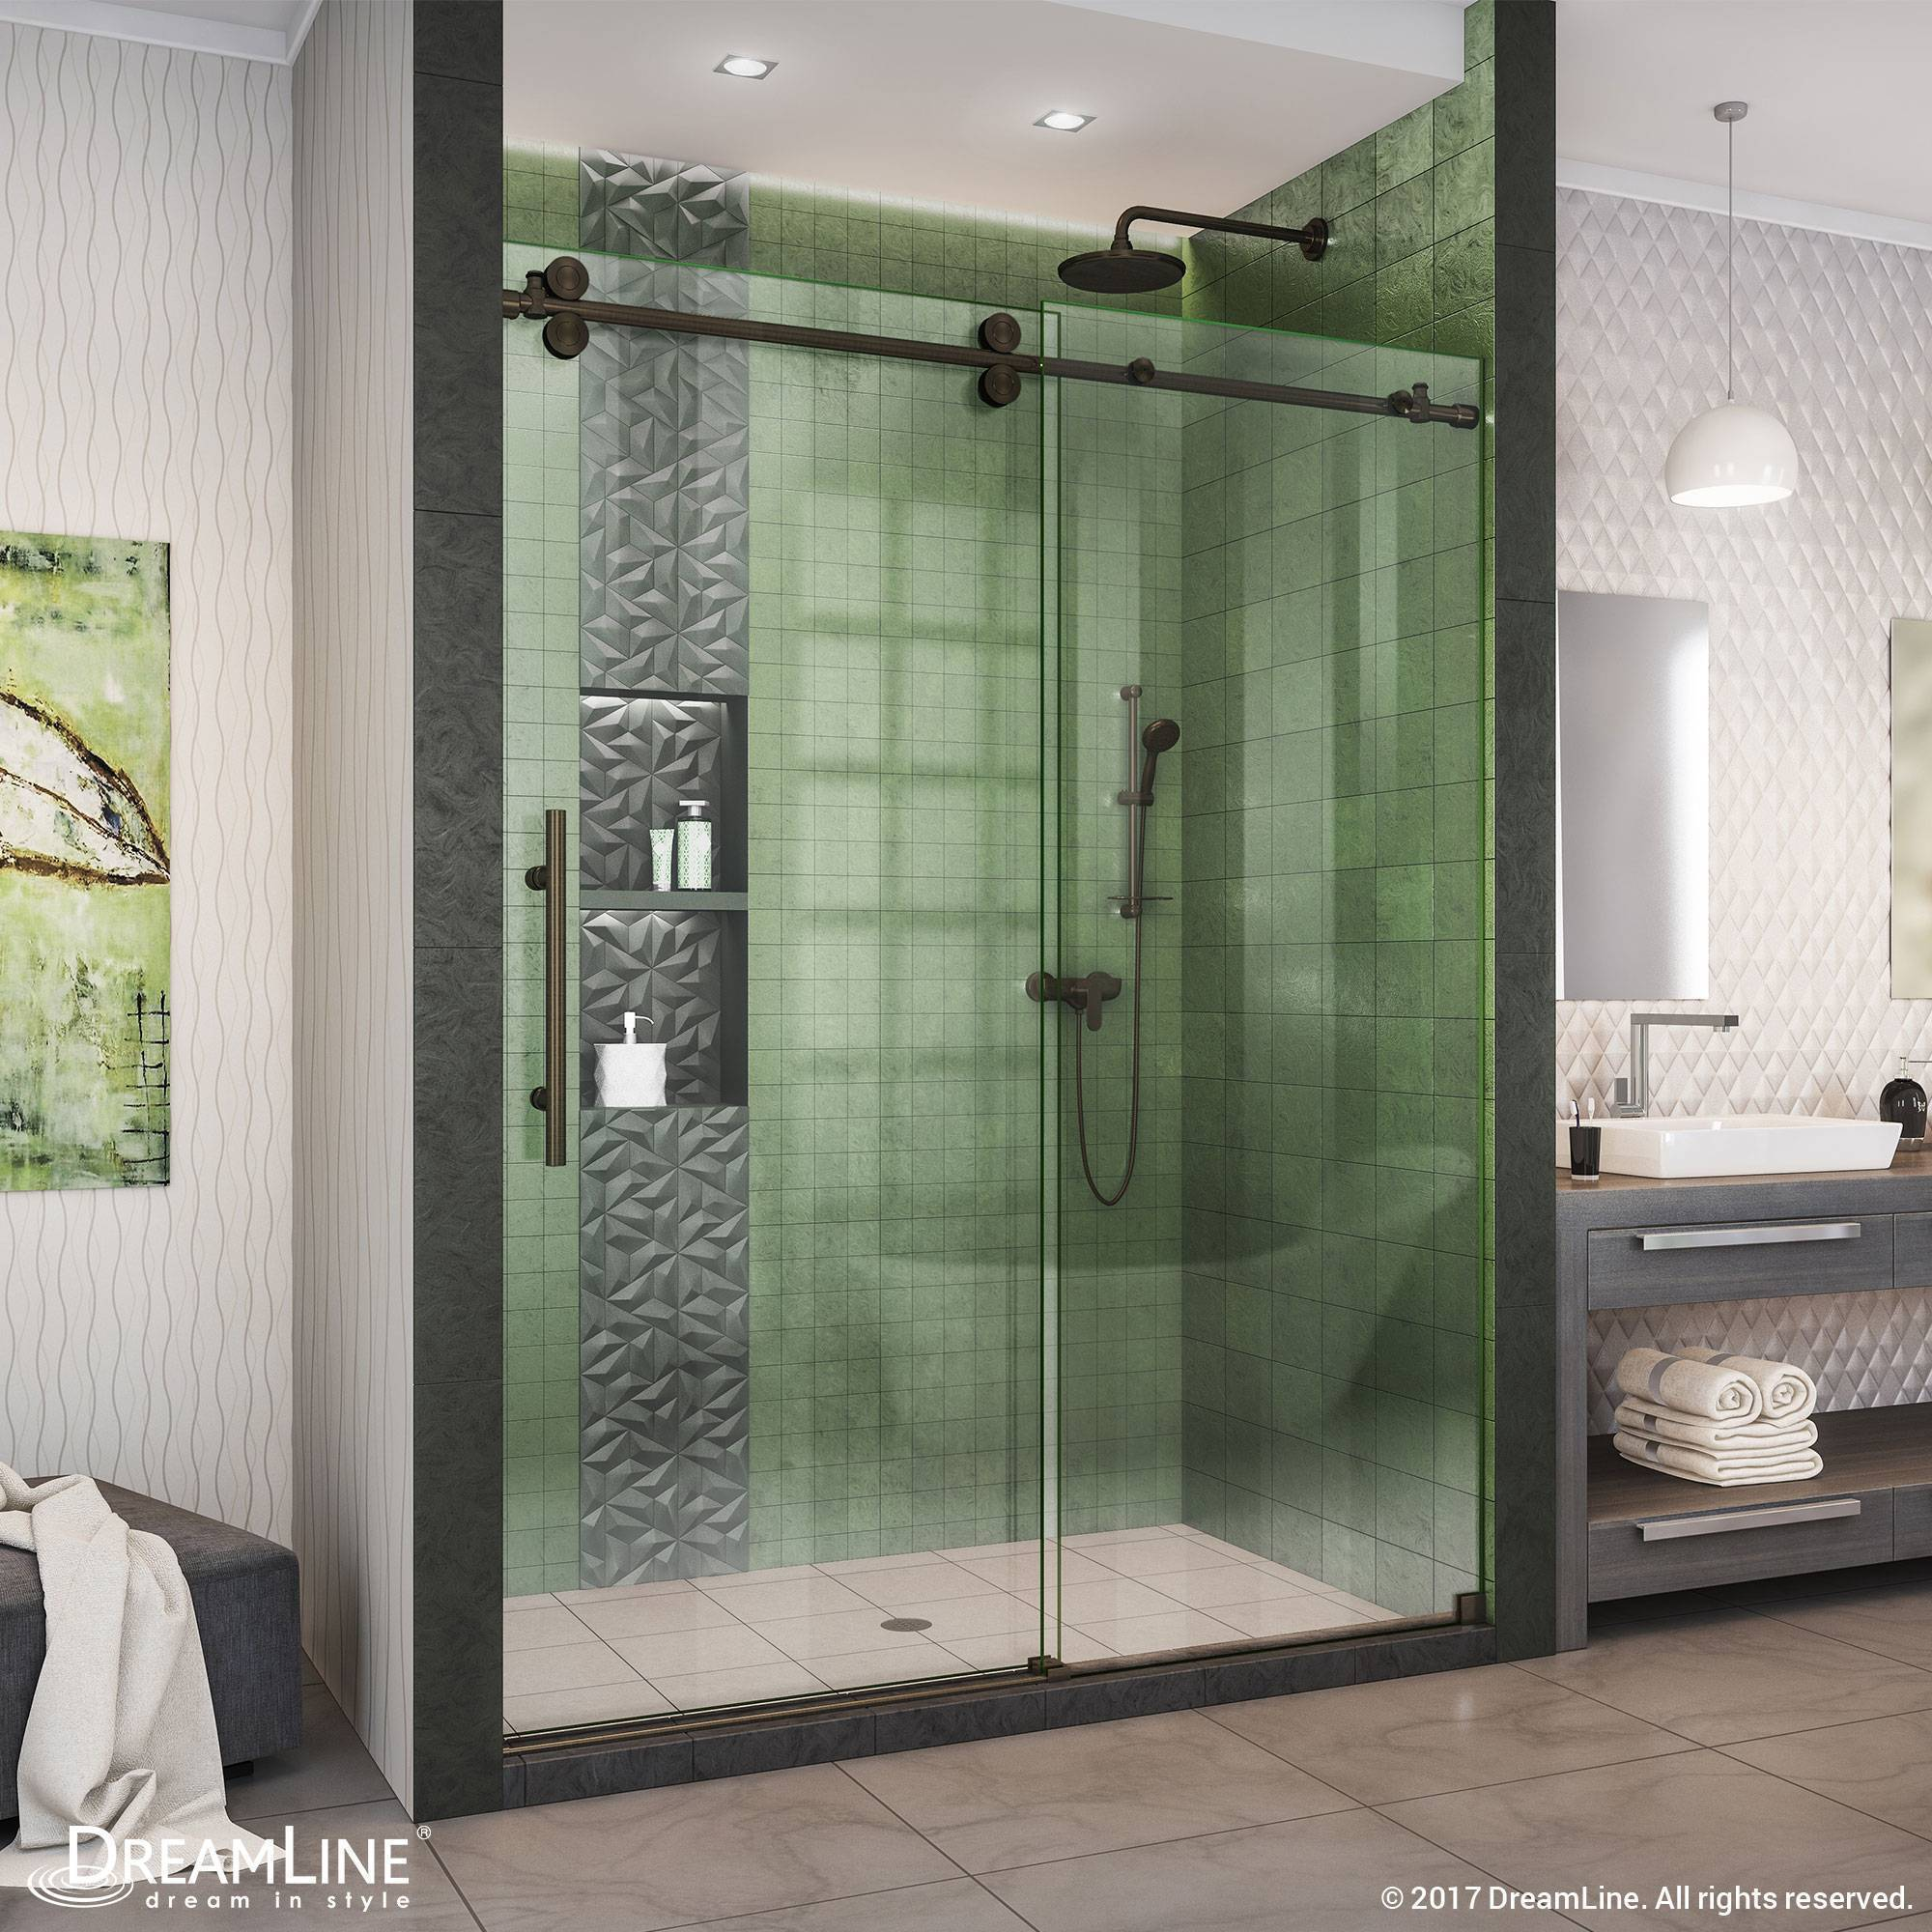 DreamLine Enigma-XO Fully Frameless Sliding Shower Door